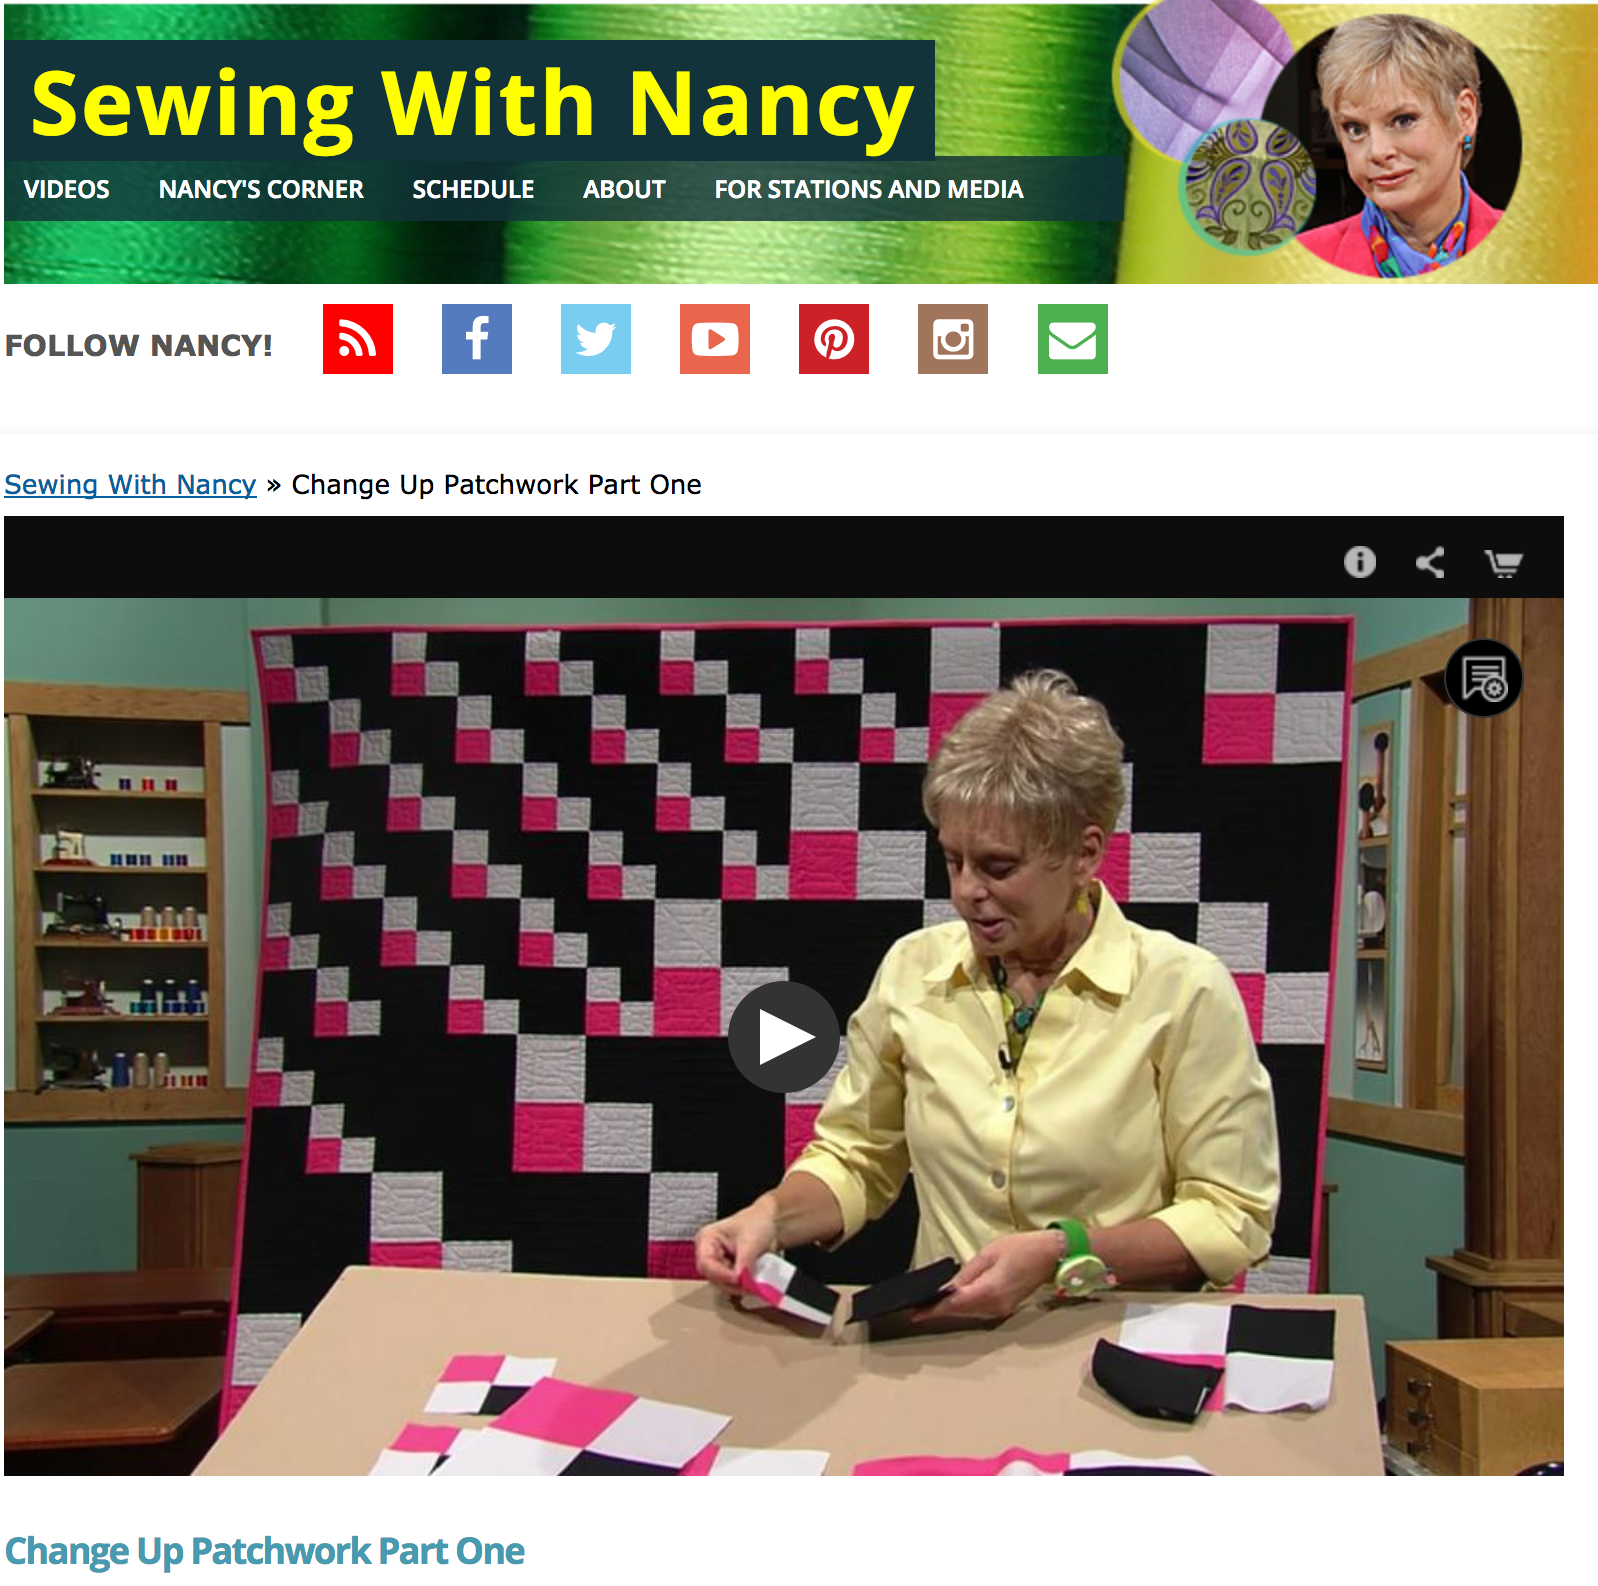 Change-up Patchwork, How to Sew a 4-patch block, Nancy Zieman, Sewing With Nancy